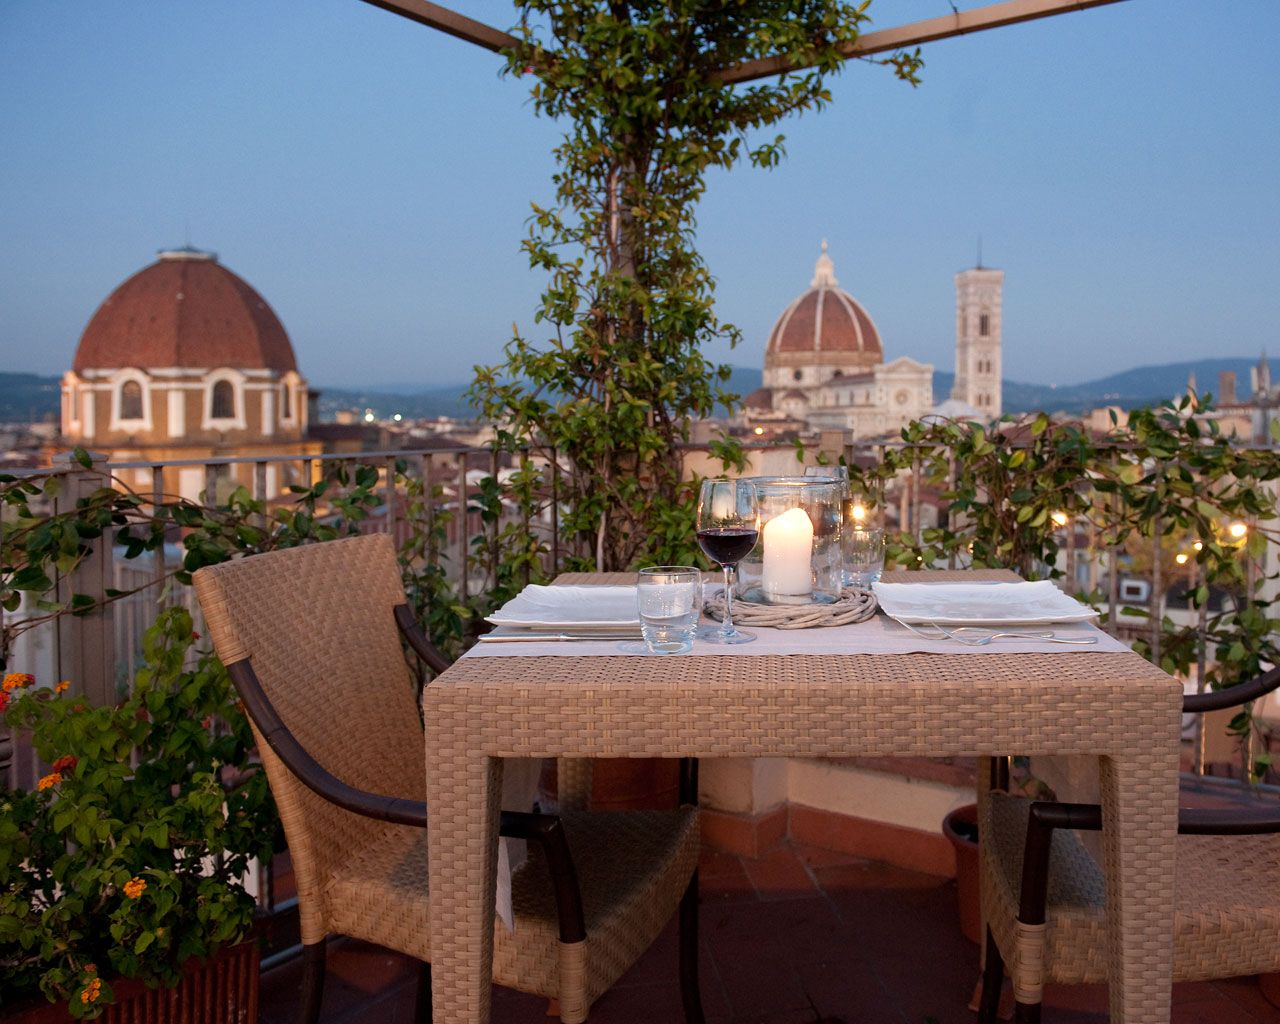 summer aperitivo from 17:00 on - Ristorante Terrazza Brunelleschi ...